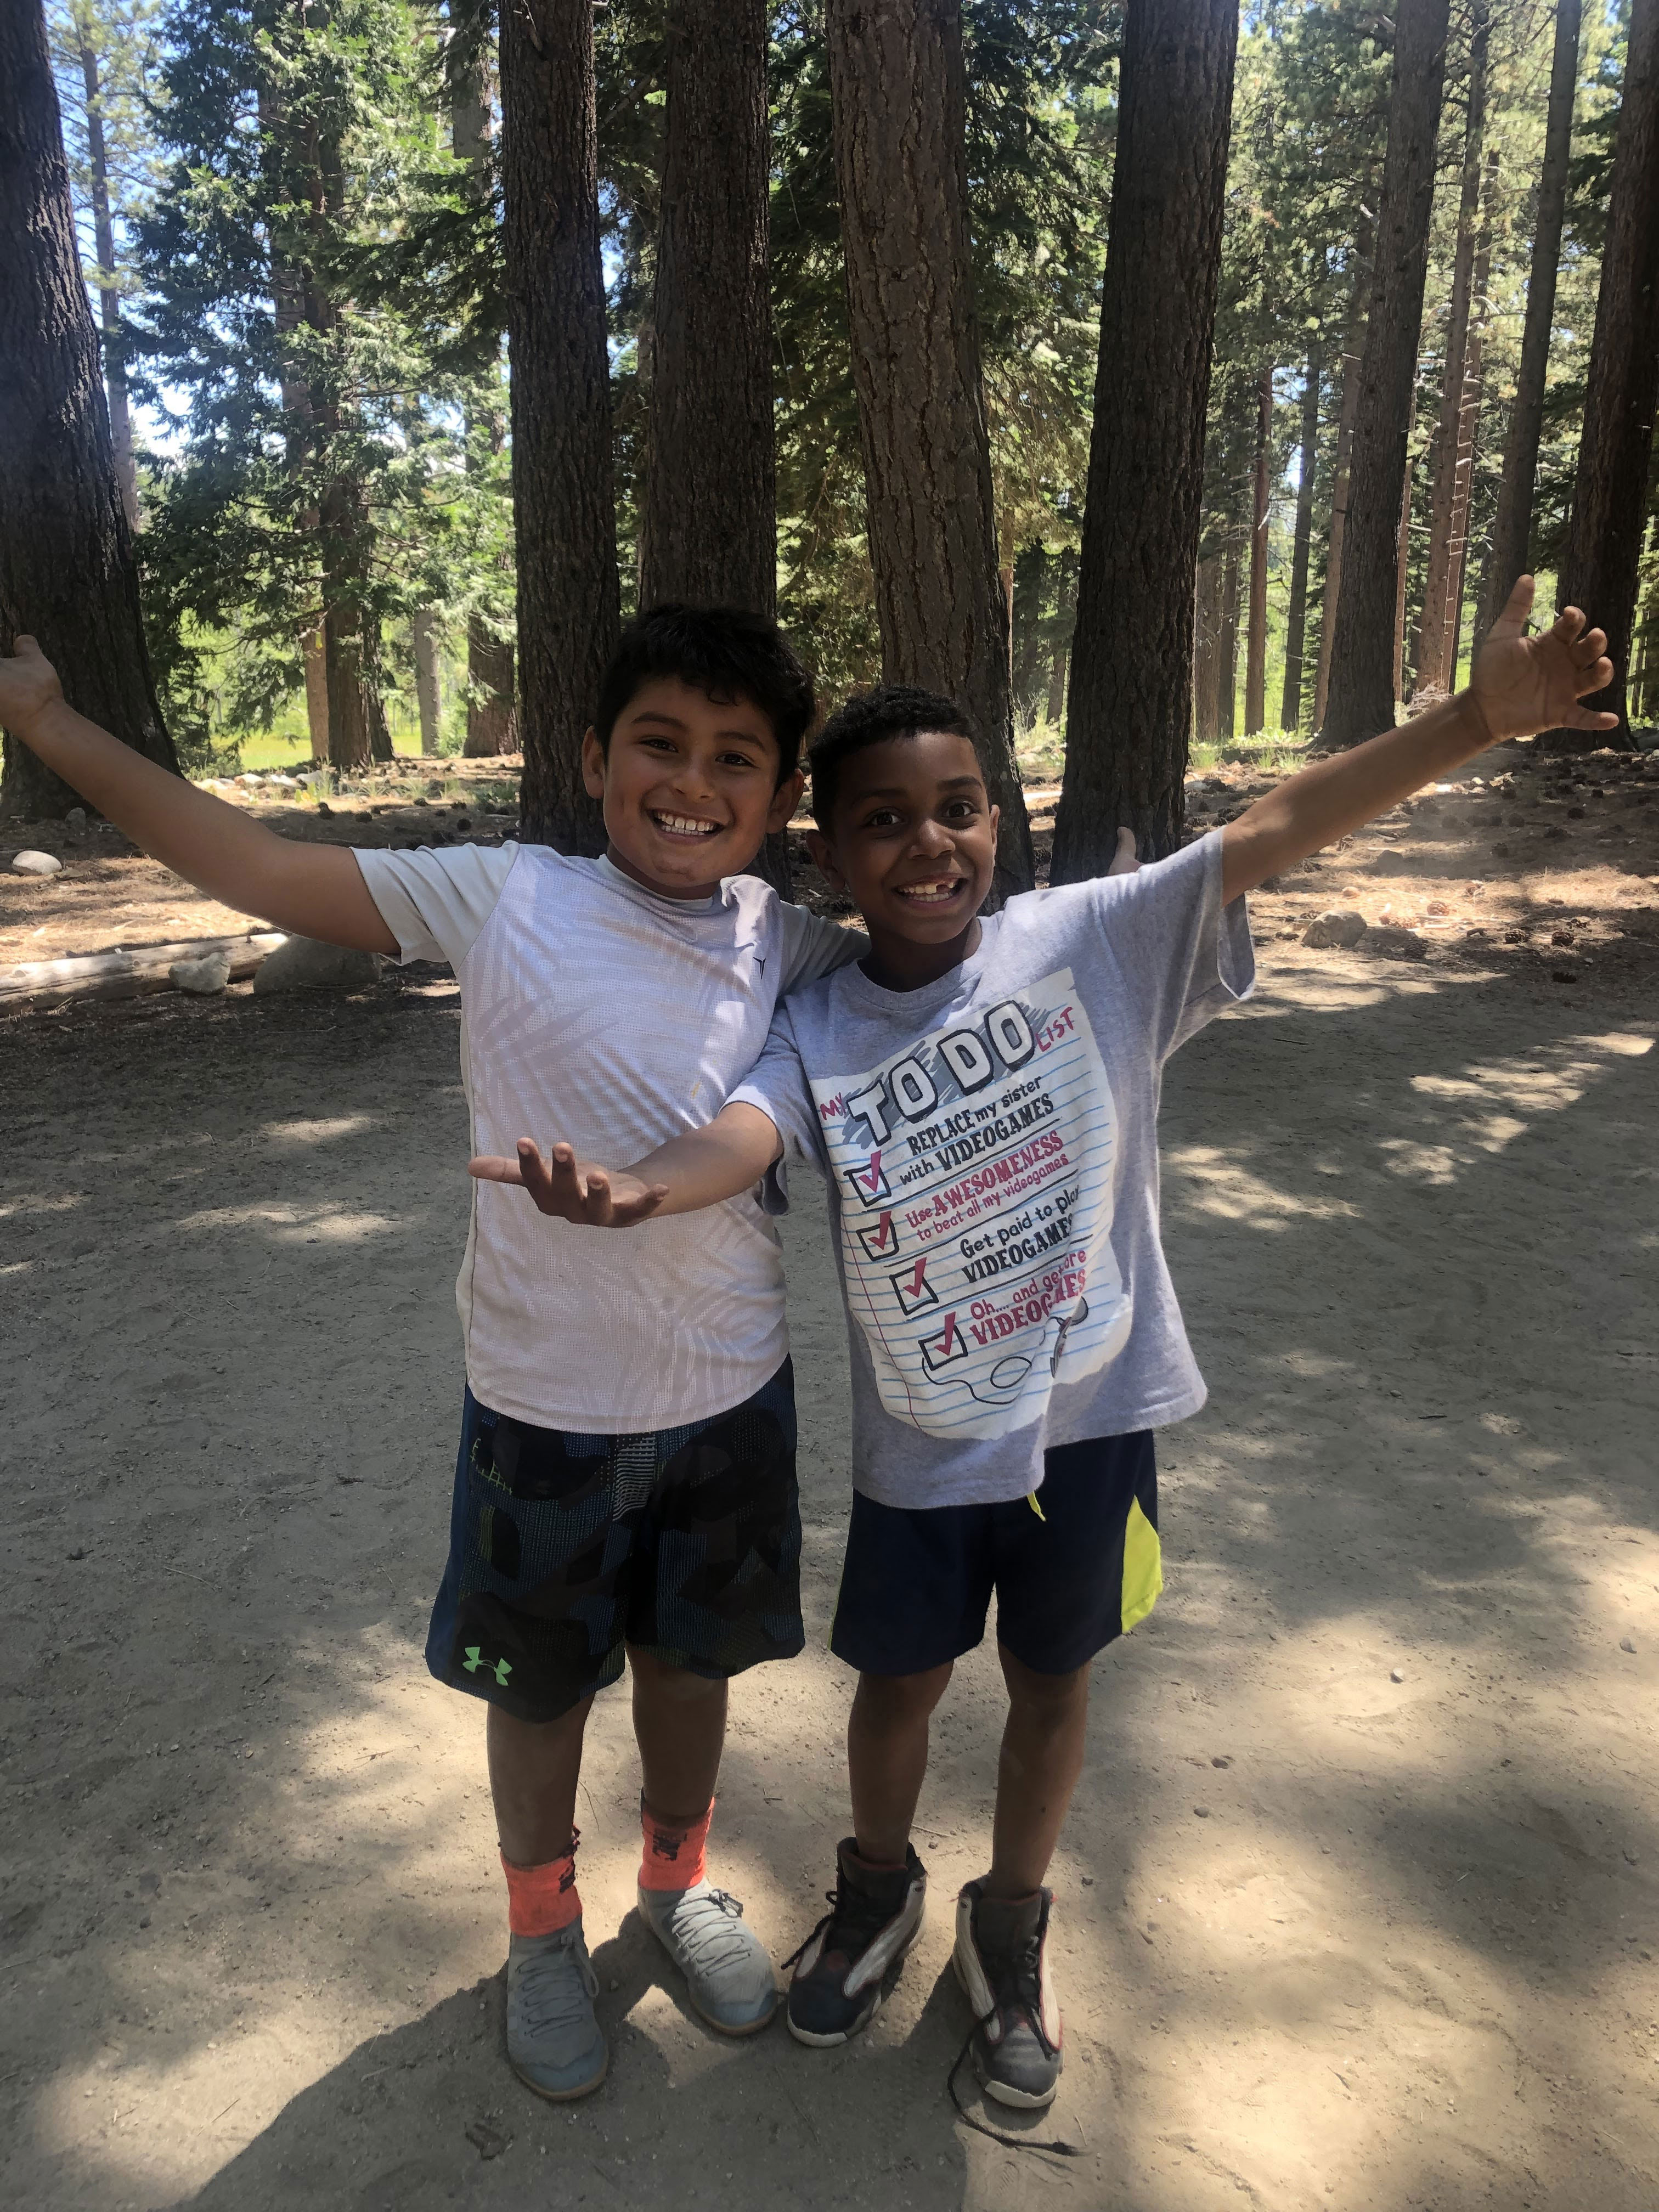 Camp Concord Youth Adventure